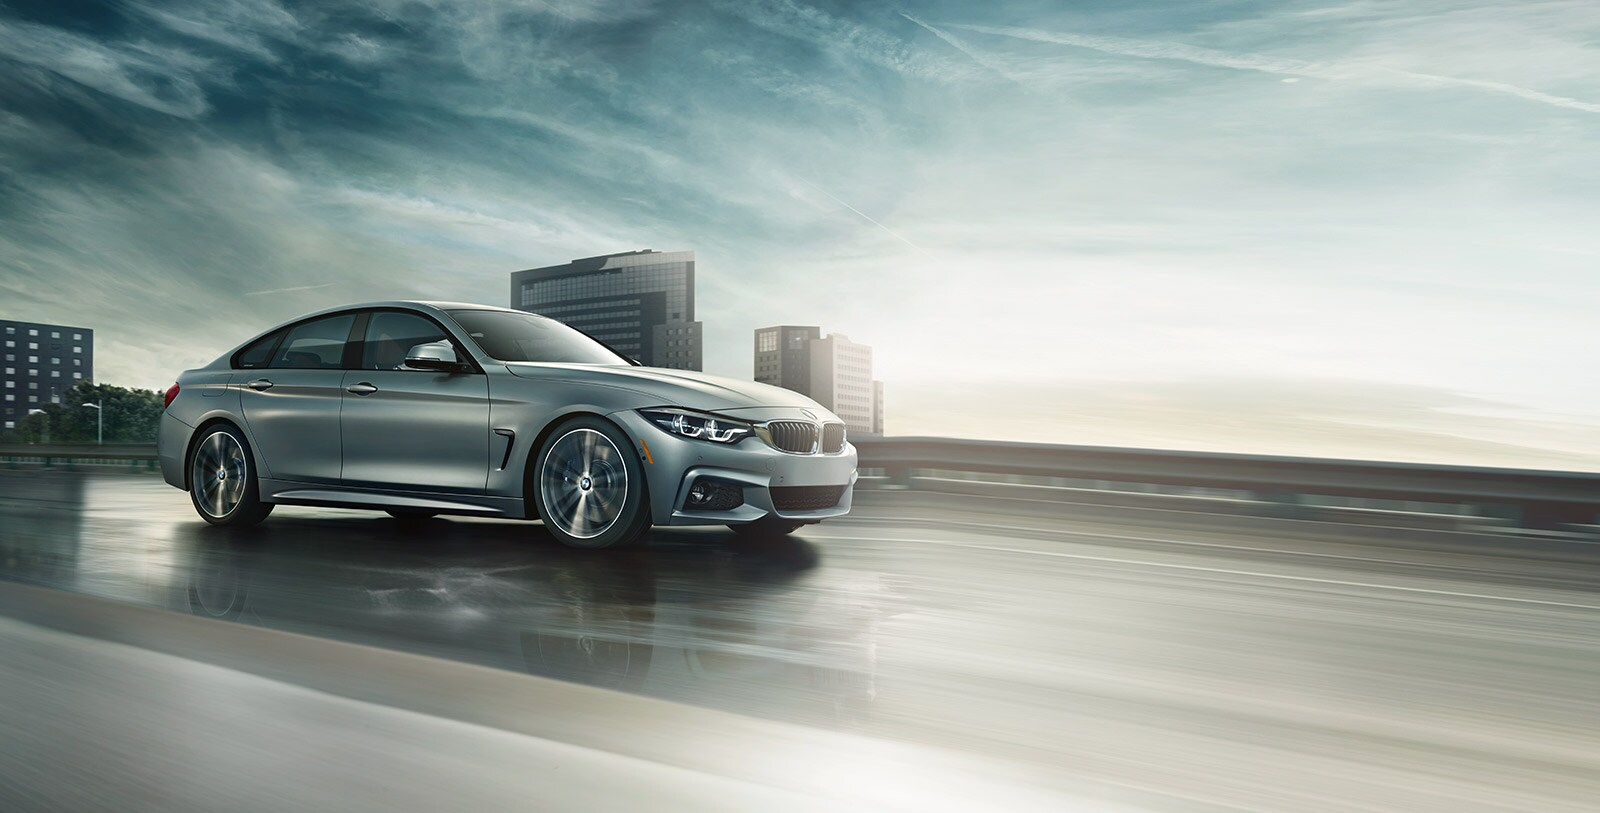 A 2019 BMW 4 Series Gran Coupe driving in front of a city skyline